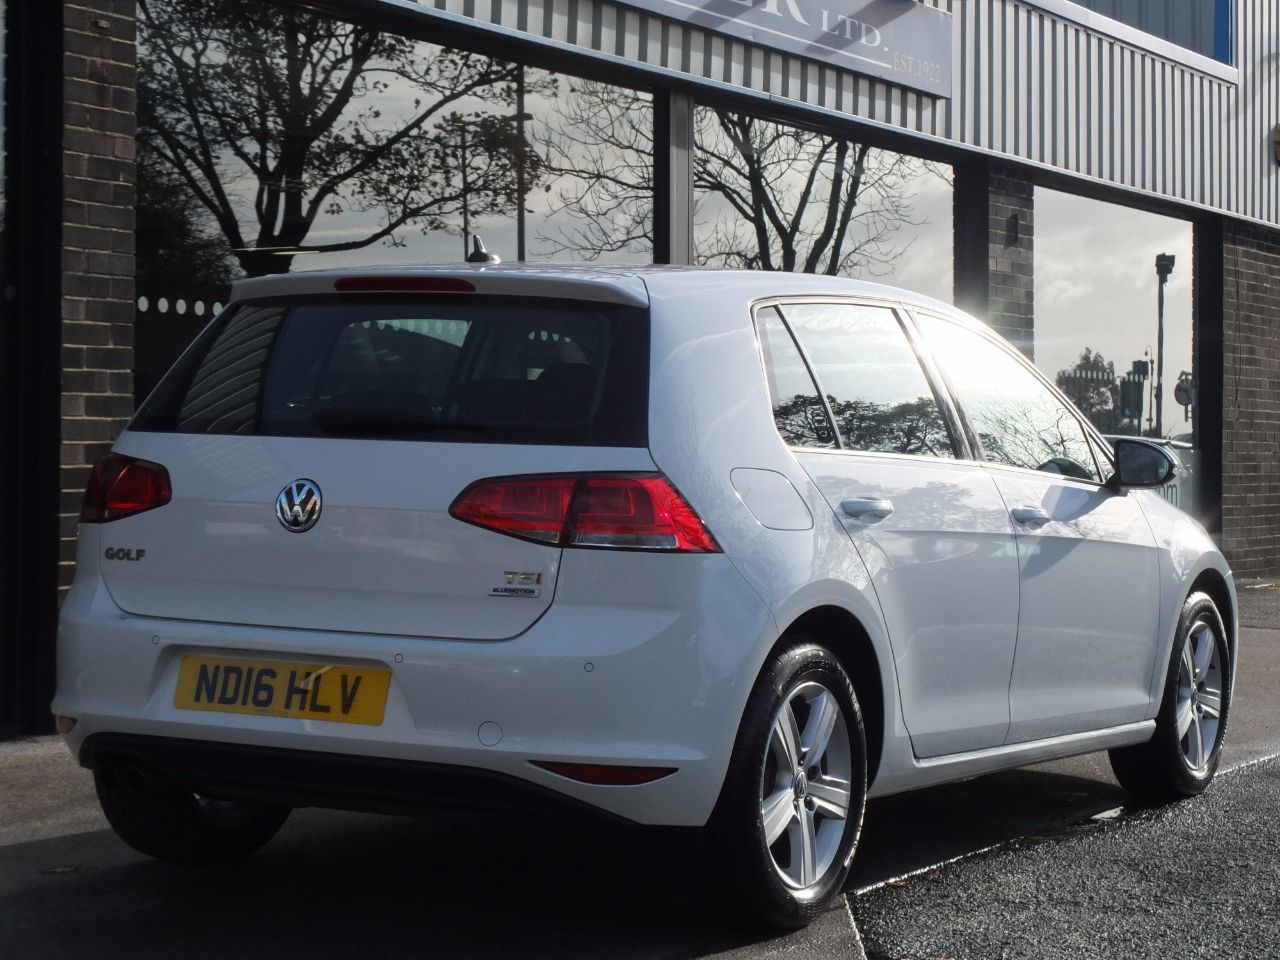 Volkswagen Golf 1.4 TSI 125ps BlueMotion Tech Match Edition 5 door Hatchback Petrol Pure White